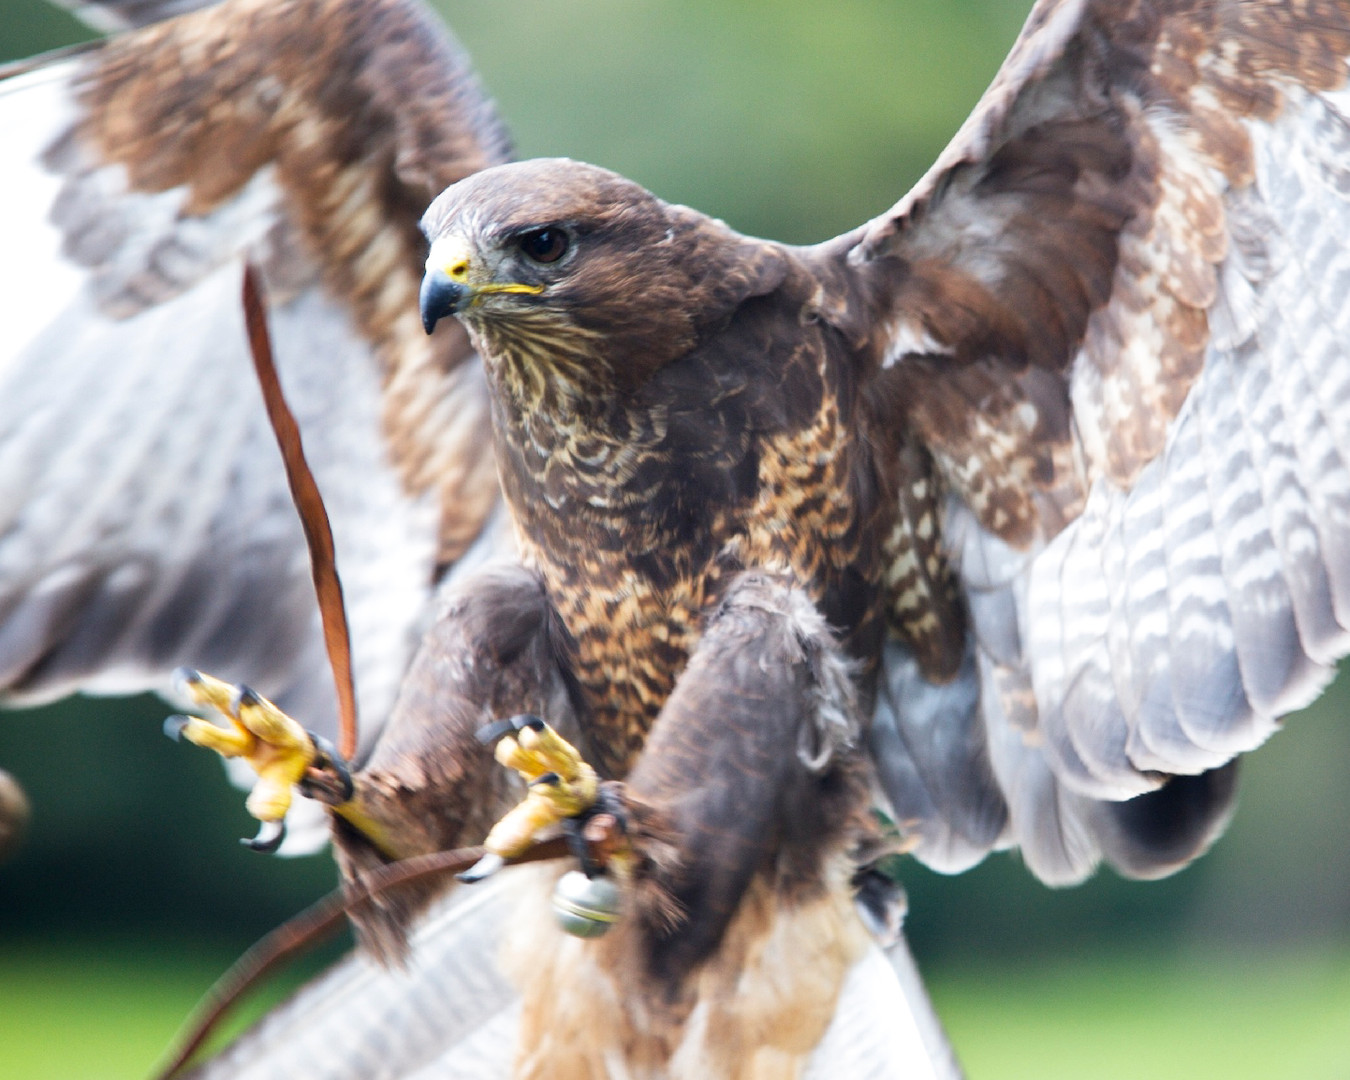 'Buzz' our amazing Common Buzzard - Buteo buteo